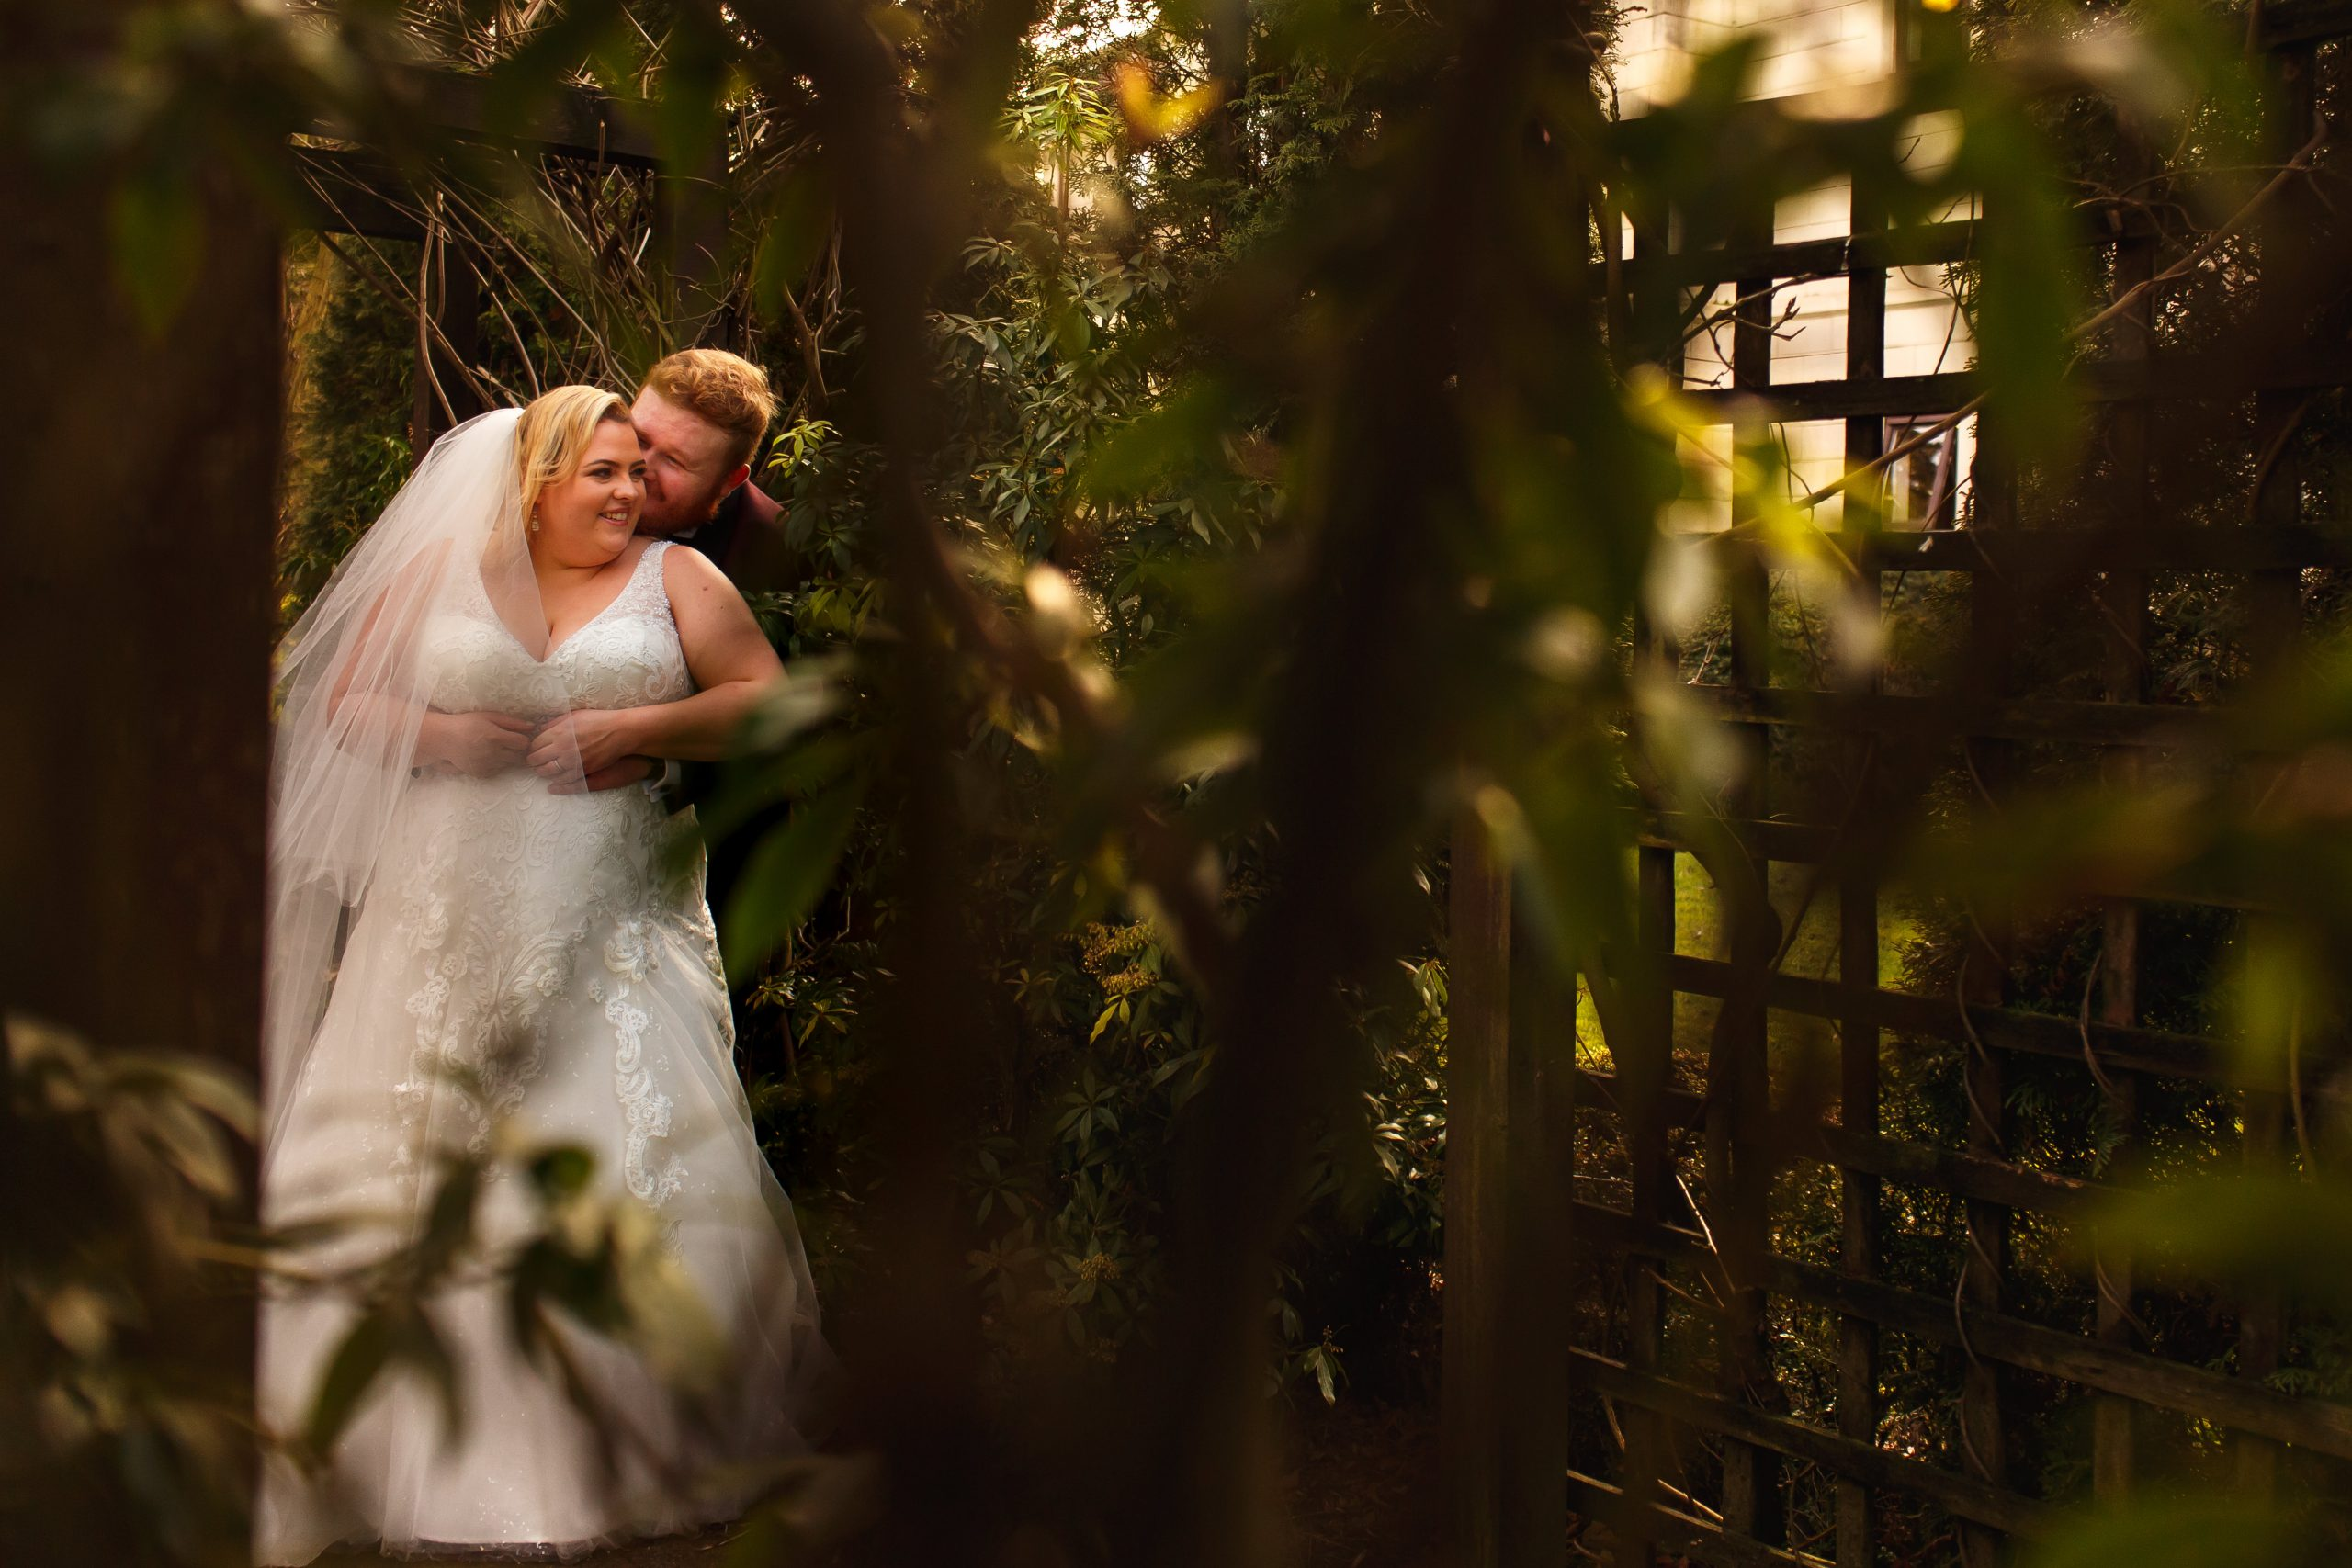 Groom bear hugging bride from behind kissing her cheek surrounded by plants in the gardens at Foxfields Whalley | Foxfields Country House Wedding Photography